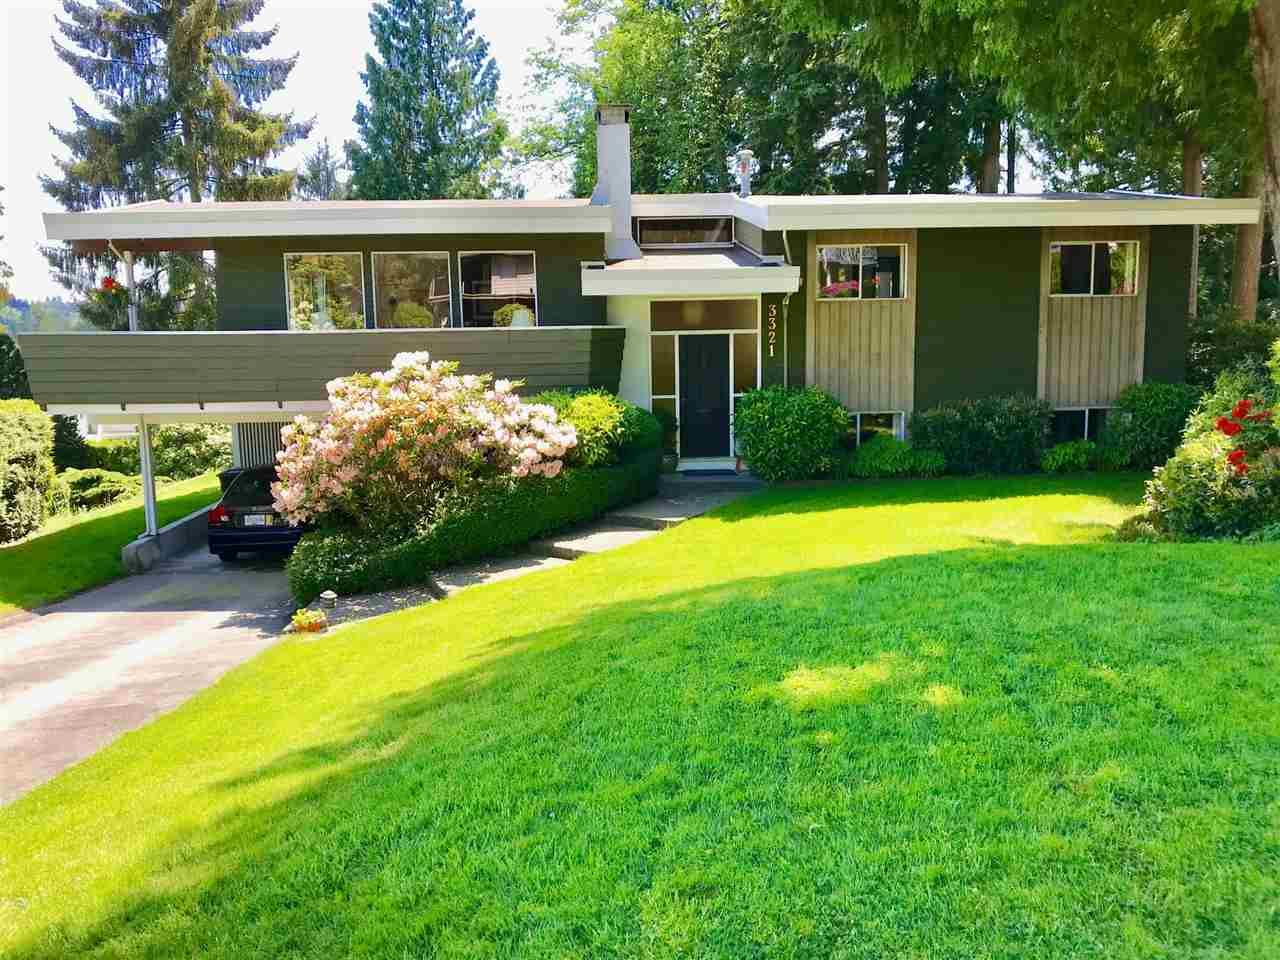 """Main Photo: 3321 DALEBRIGHT Drive in Burnaby: Government Road House for sale in """"GOVERNMENT RD AREA"""" (Burnaby North)  : MLS®# R2268285"""